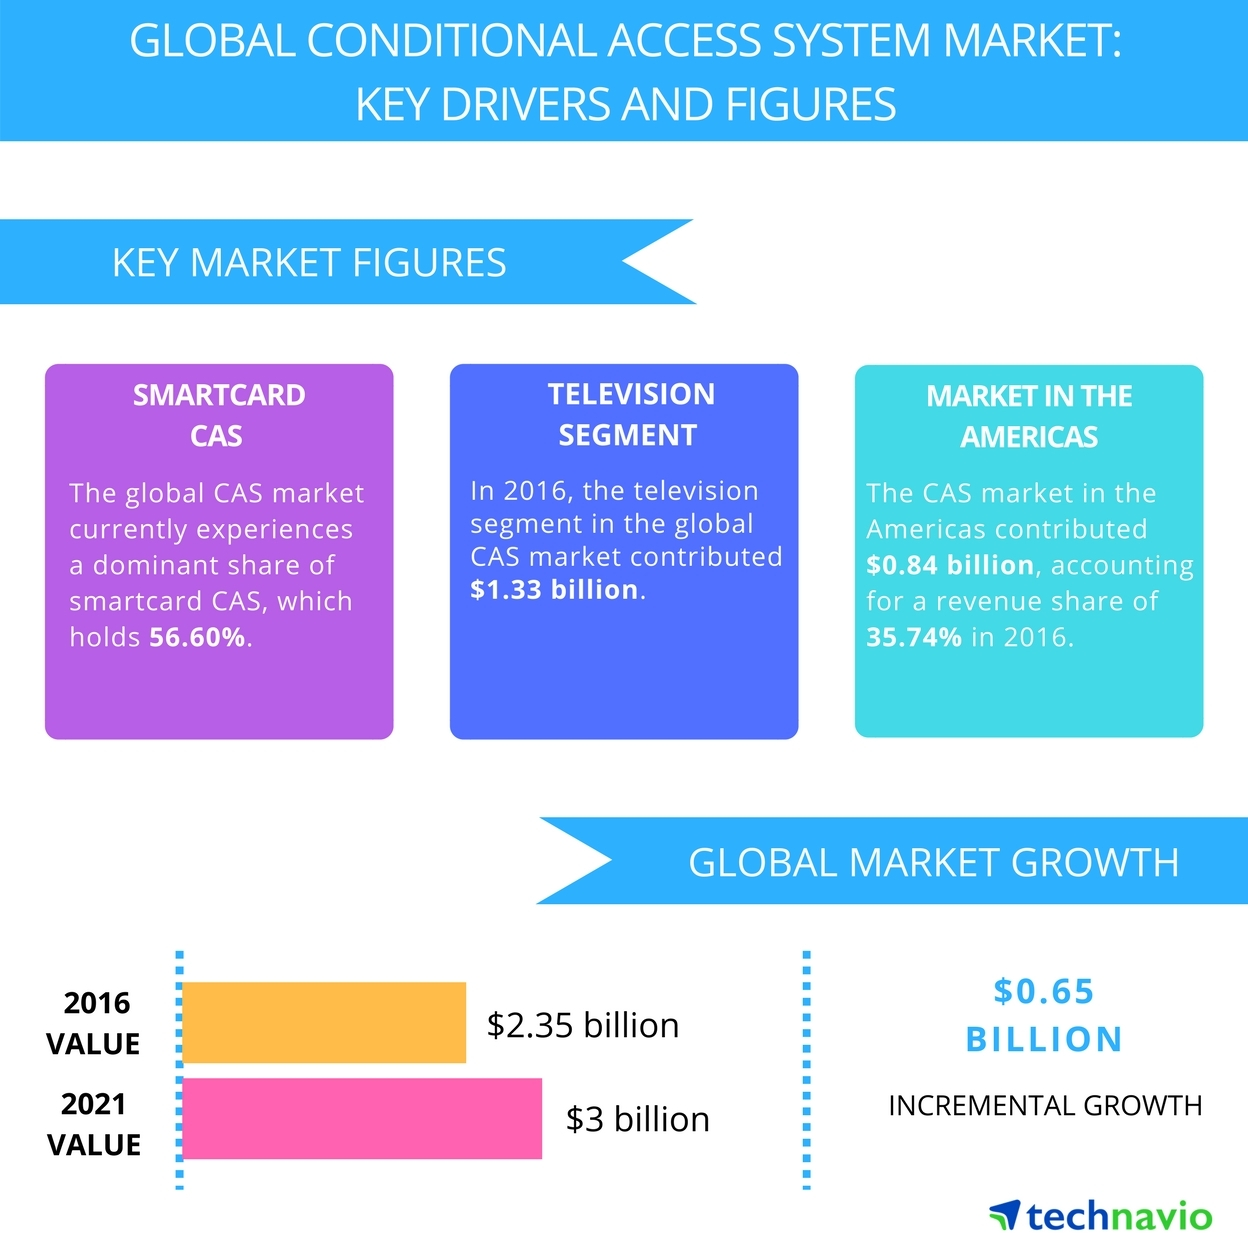 Top 5 Vendors in the Global Conditional Access System Market From